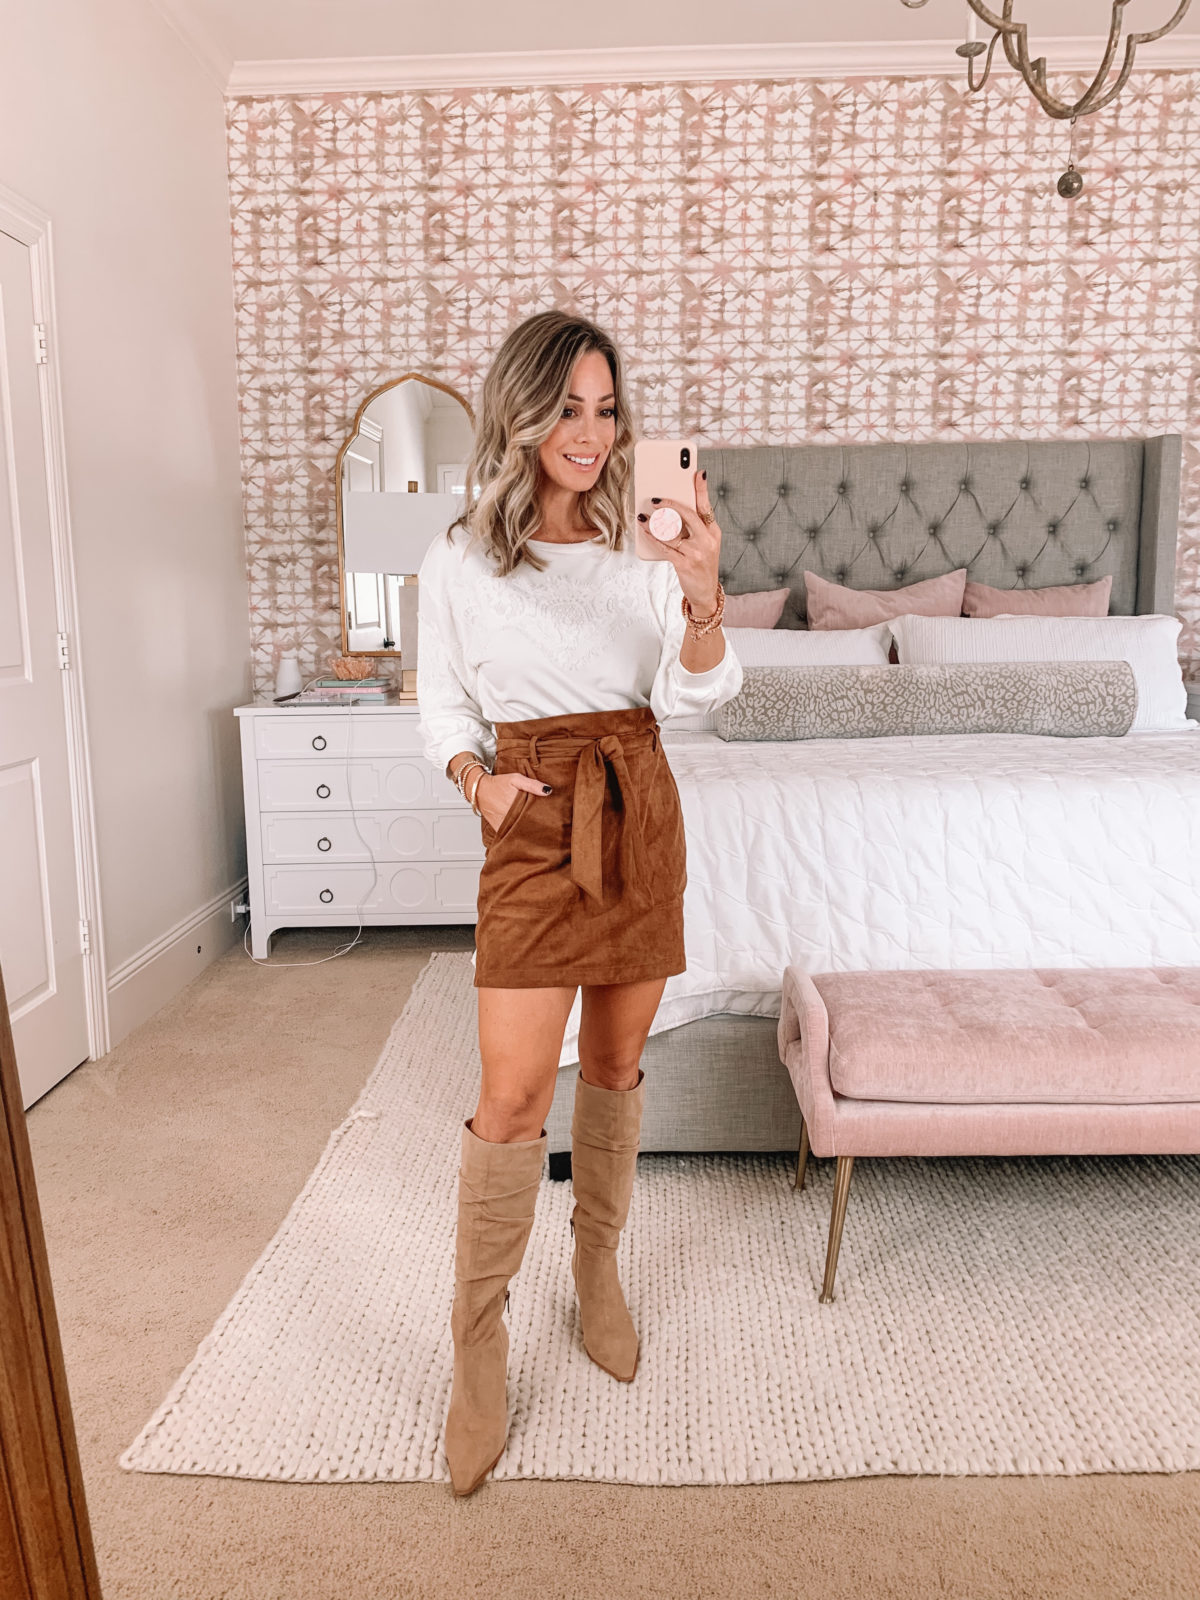 Dressing Room Finds, Express, Suede Skirt, White Top, Boots